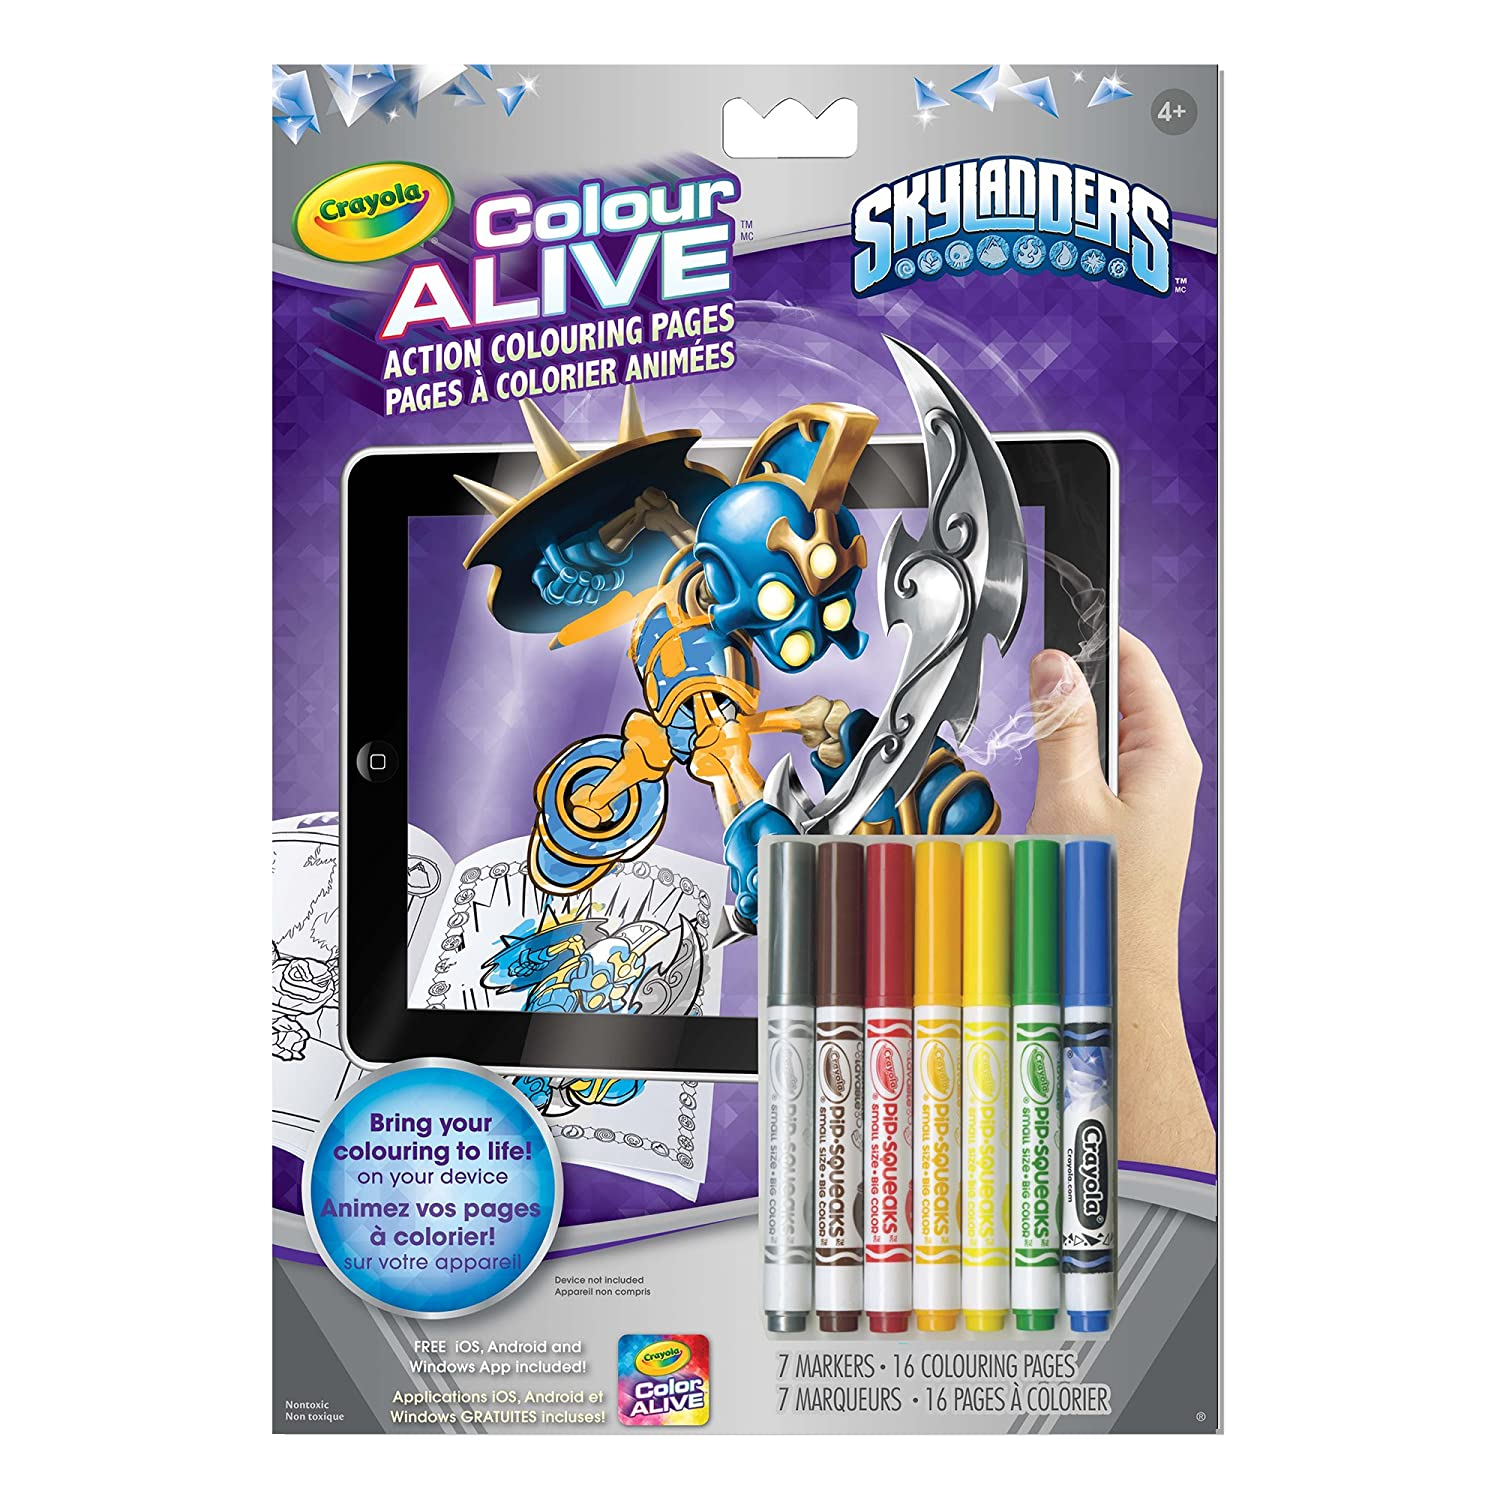 Crayola Colour Alive Action Colouring Pages, Skylanders 04-1180